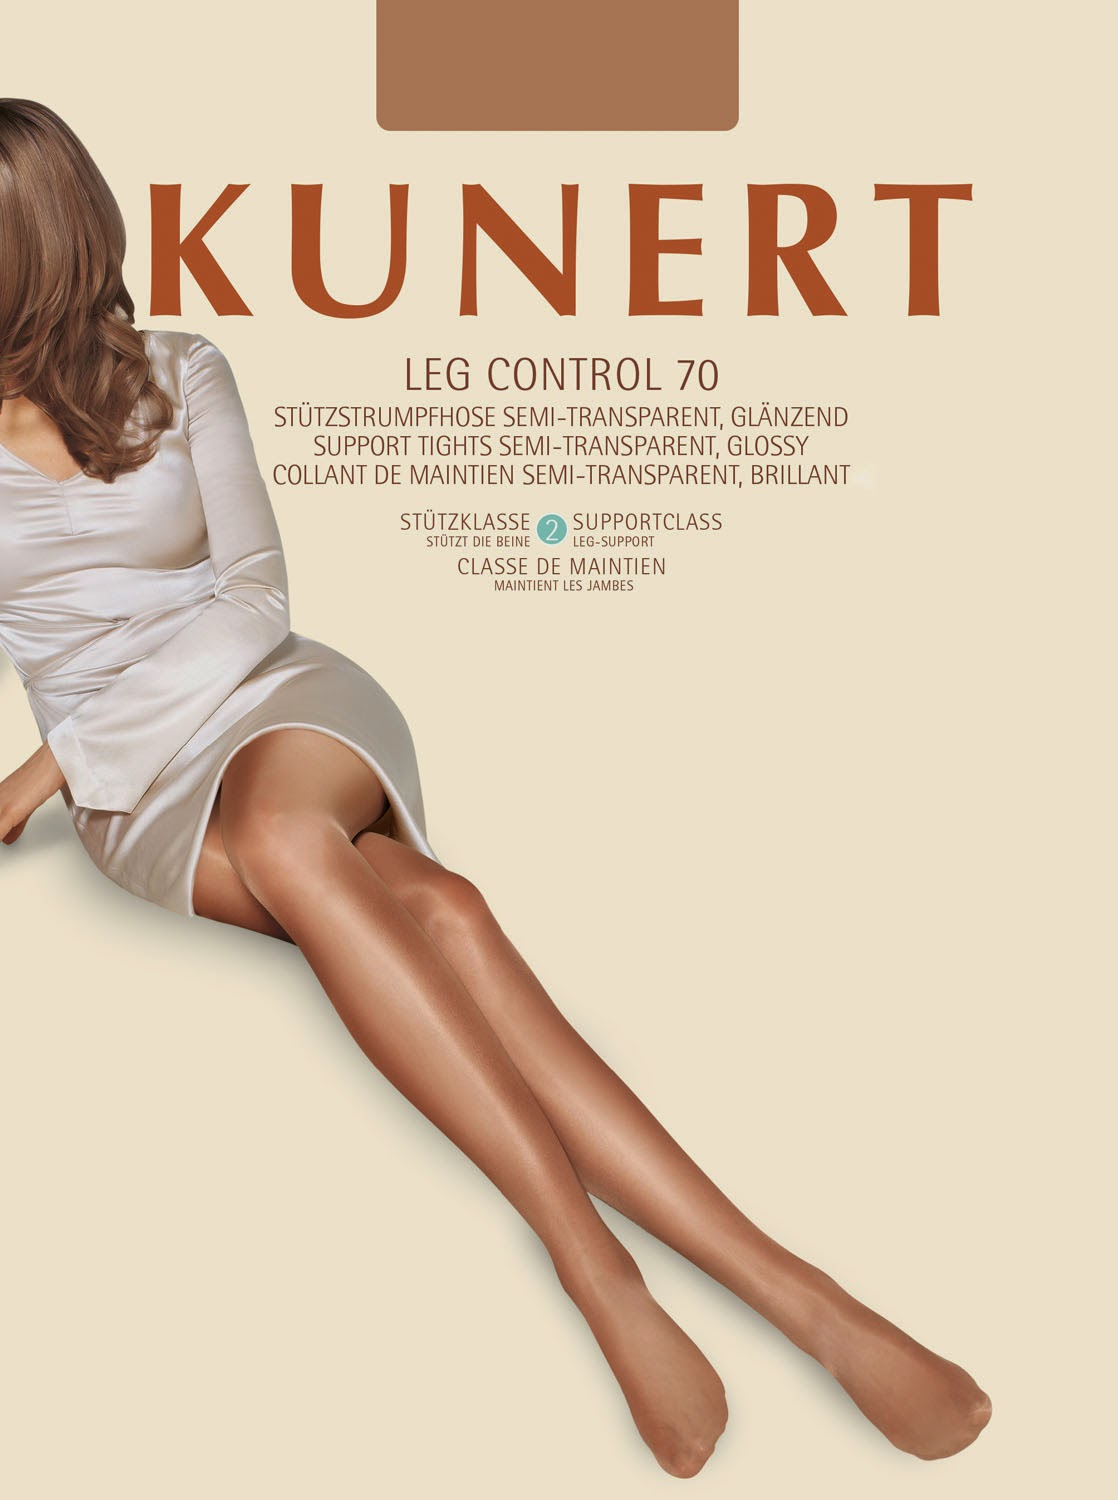 8e5bdf604 The Kunert Leg Control 70 Support Tights are nicely packaged. The tights  are carefully folded around a central rectangular card